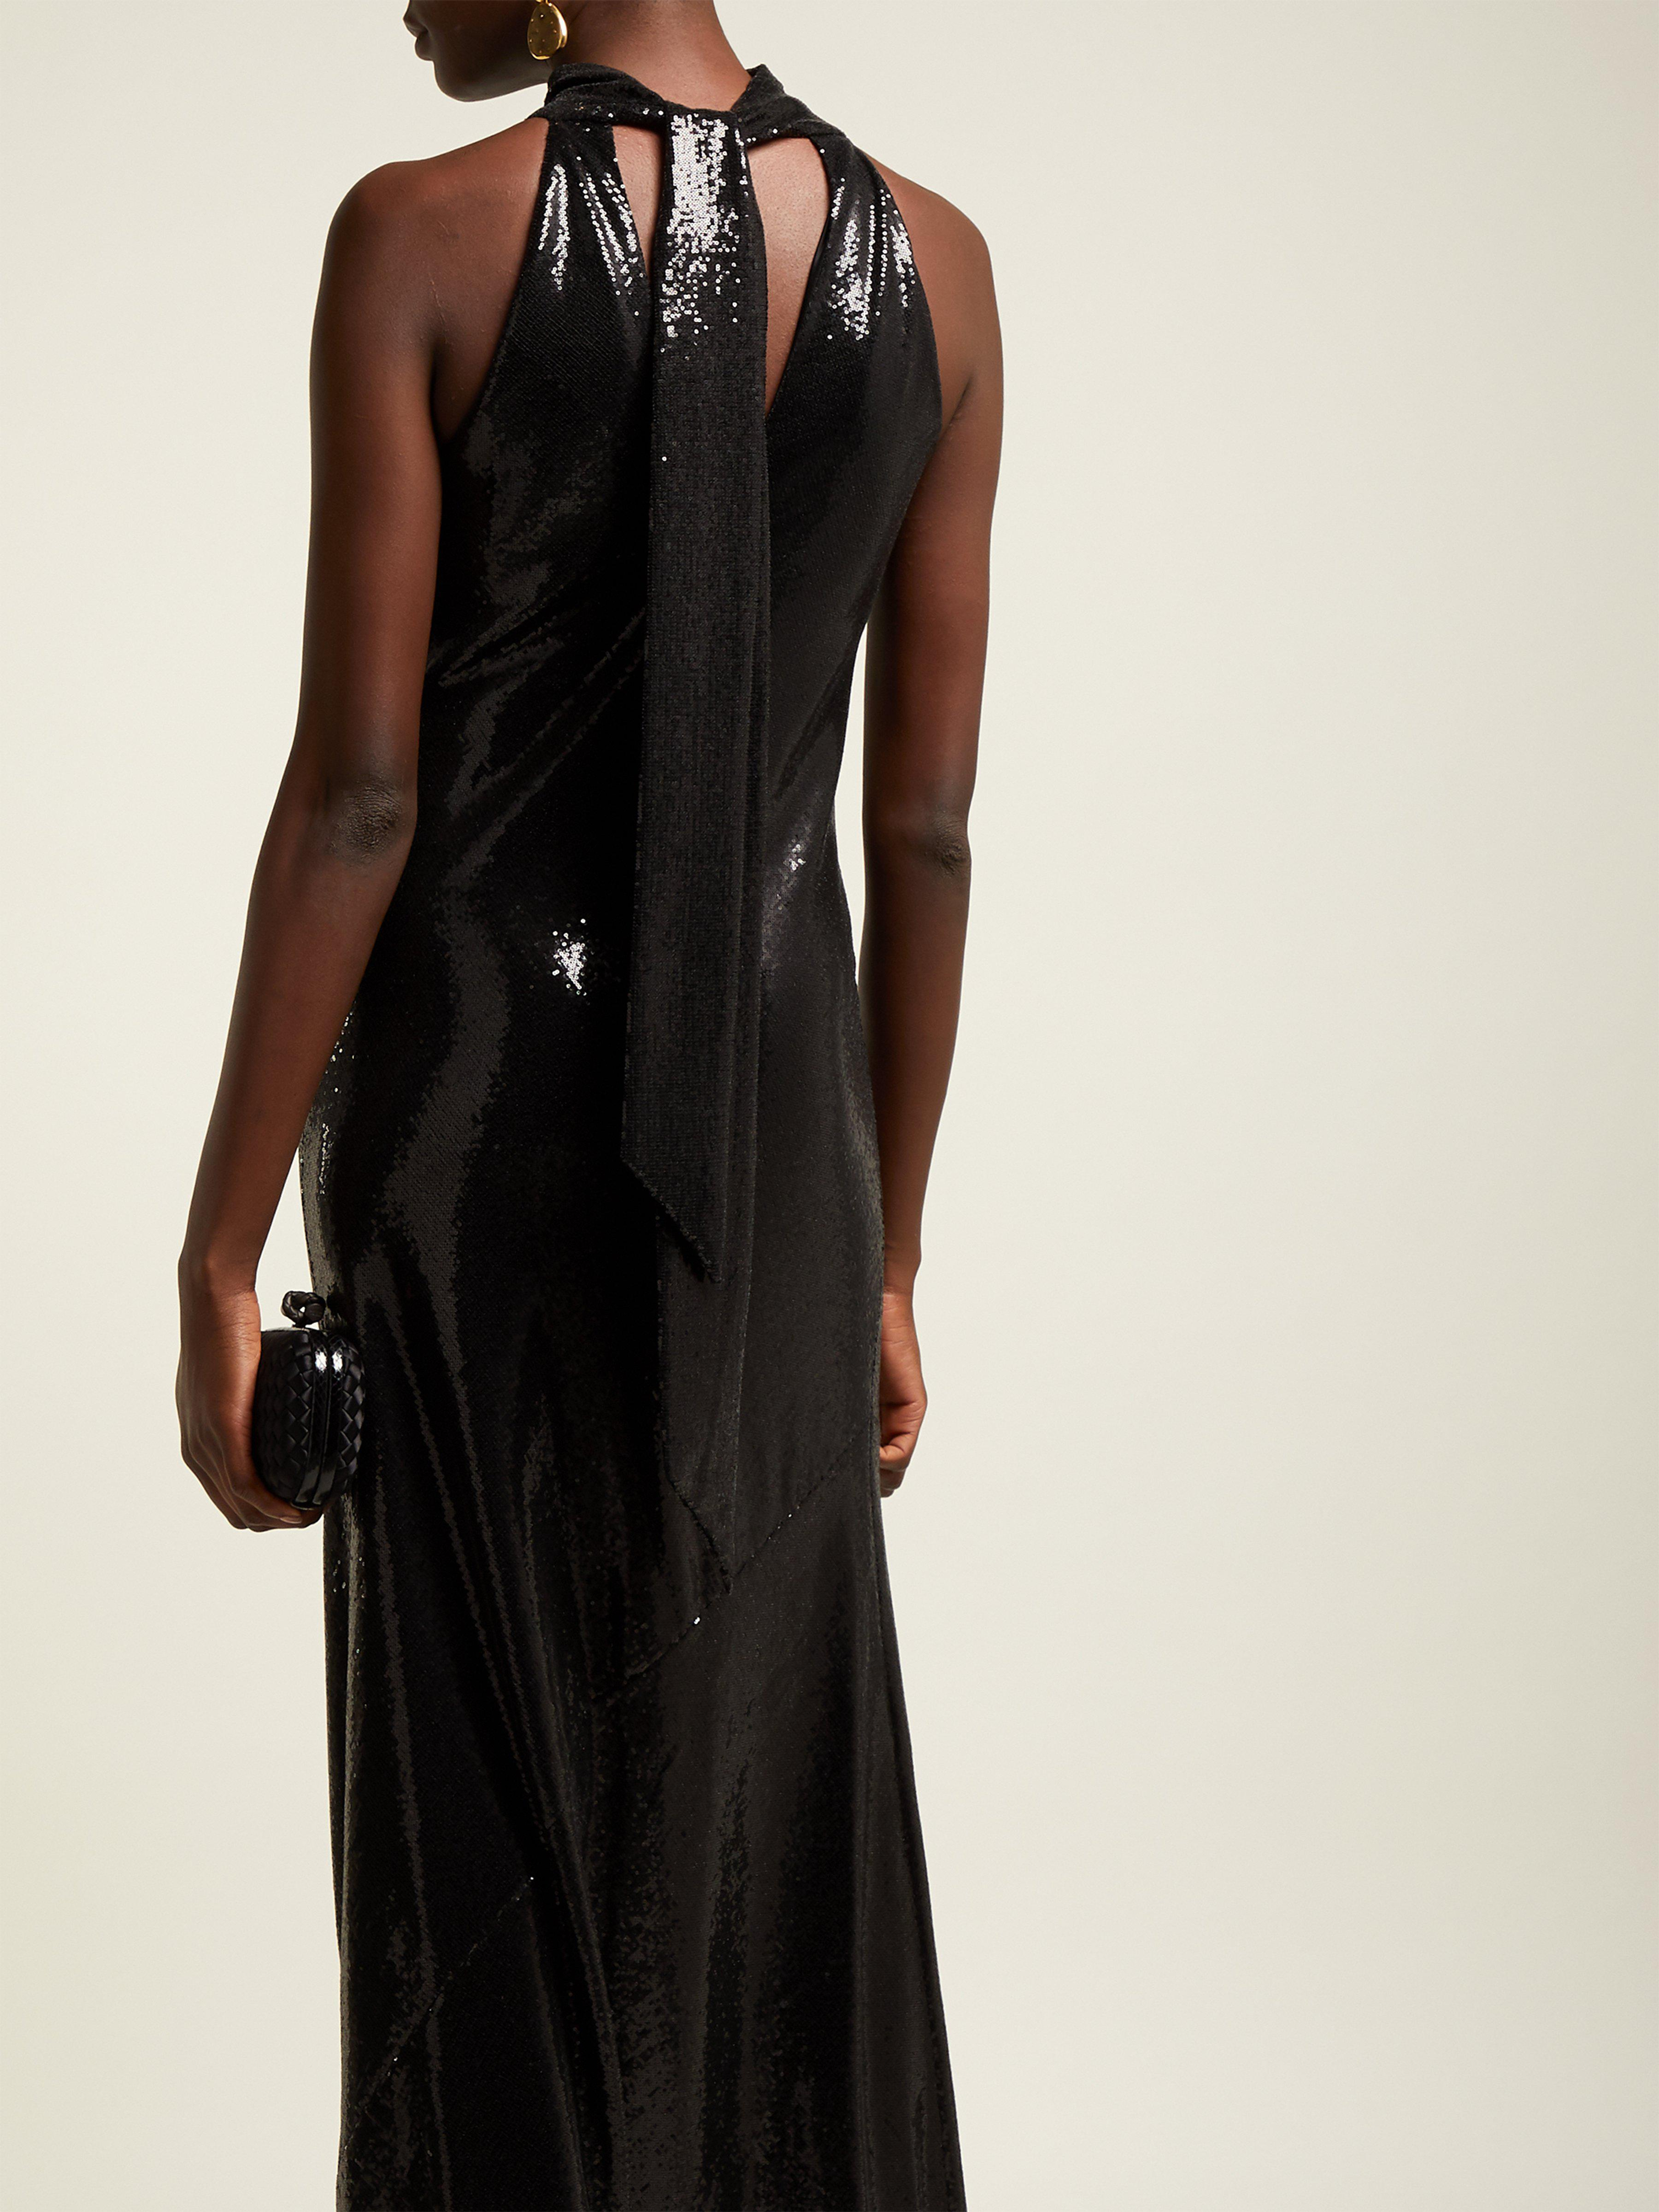 abd3cbac Galvan London Daniela Sequined Halterneck Gown in Black - Lyst